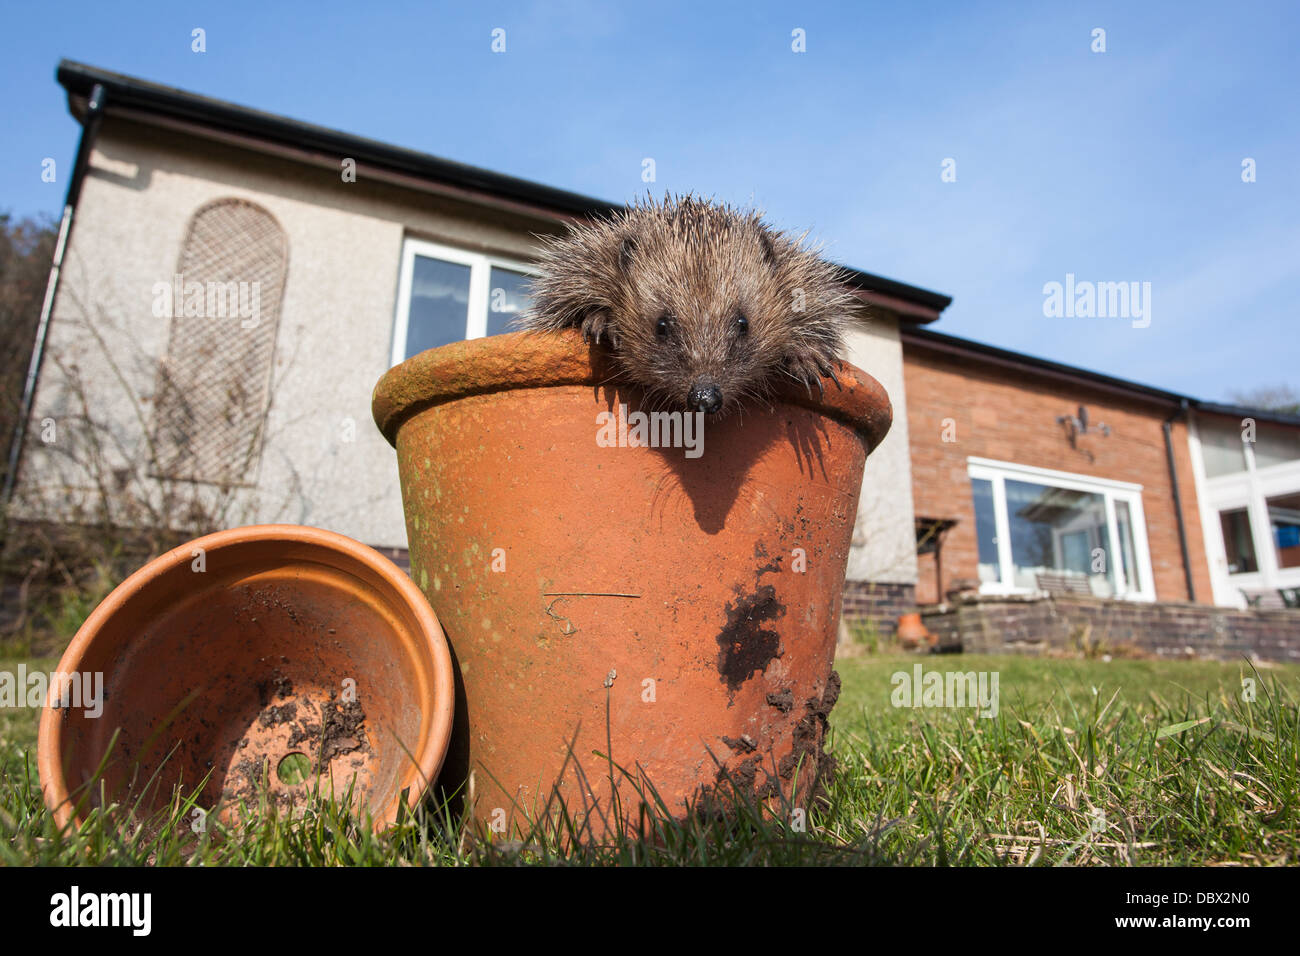 Hedgehog (Erinaceus europaeus), in plant pot, captive, UK, March 2013 - Stock Image